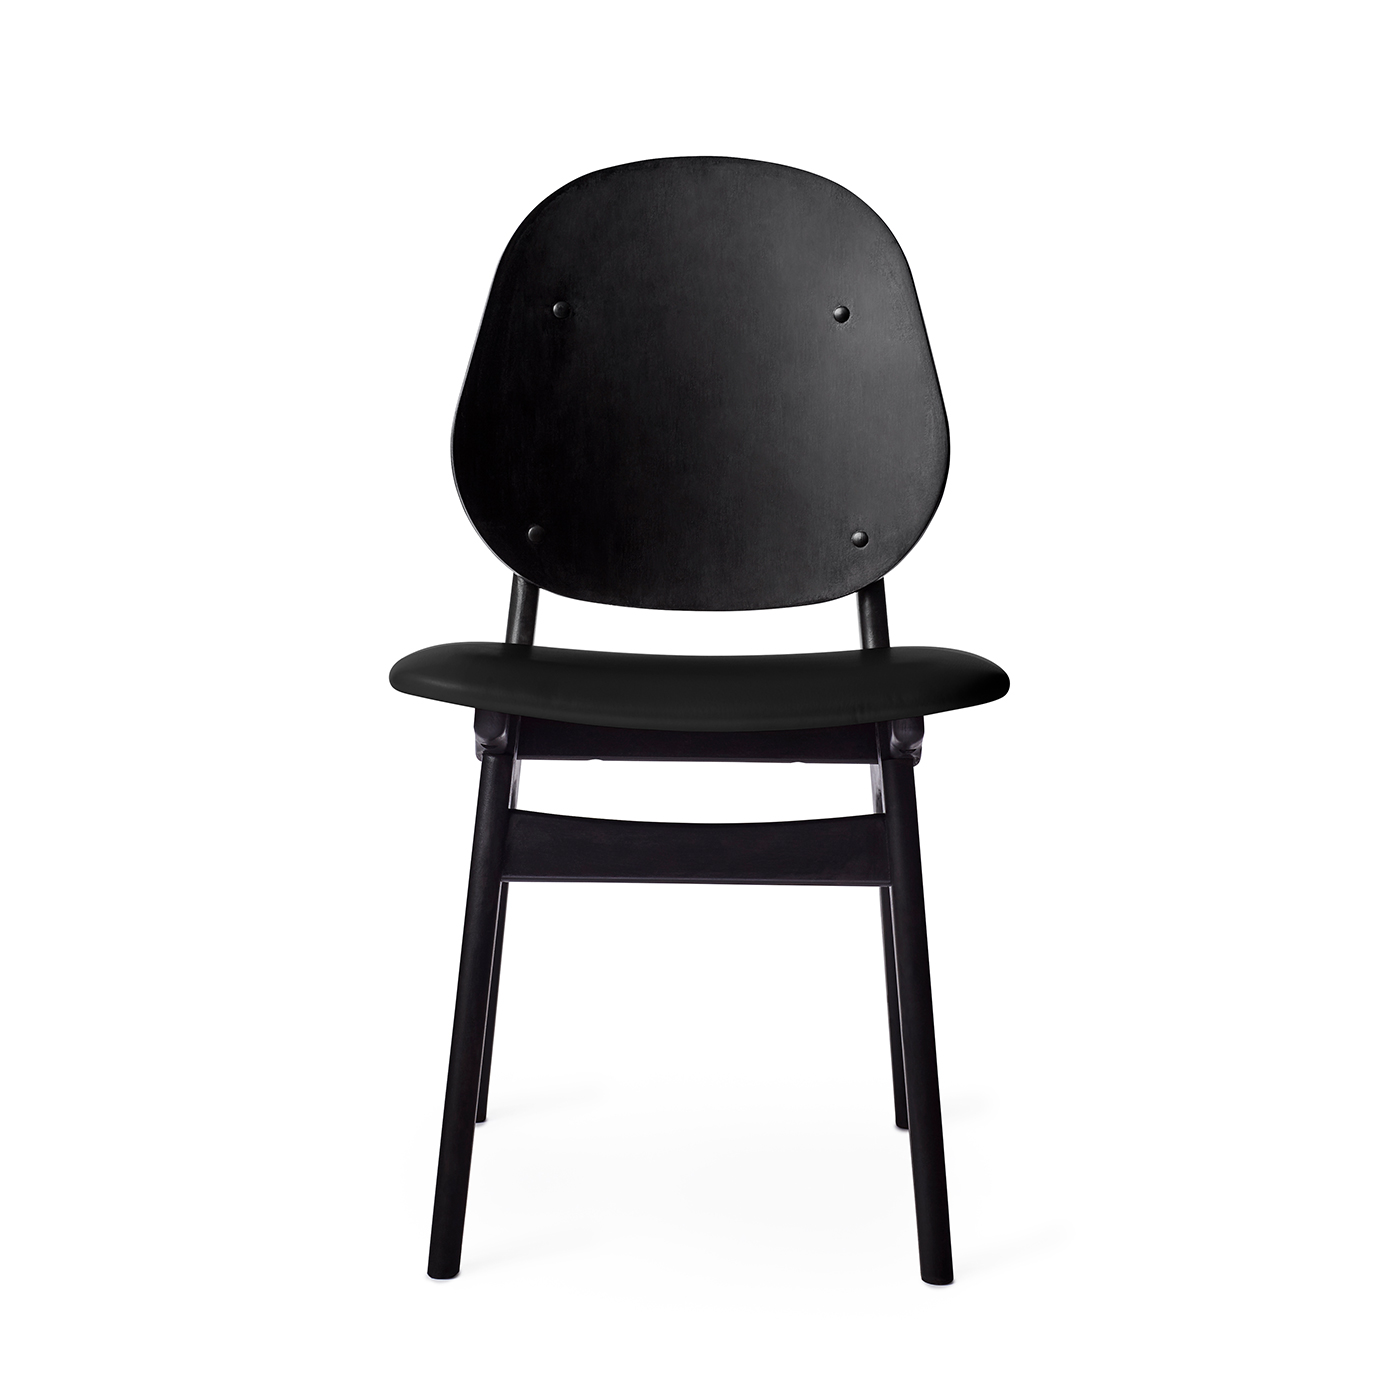 Noble Chair - Black Lacquer/Leather Seat